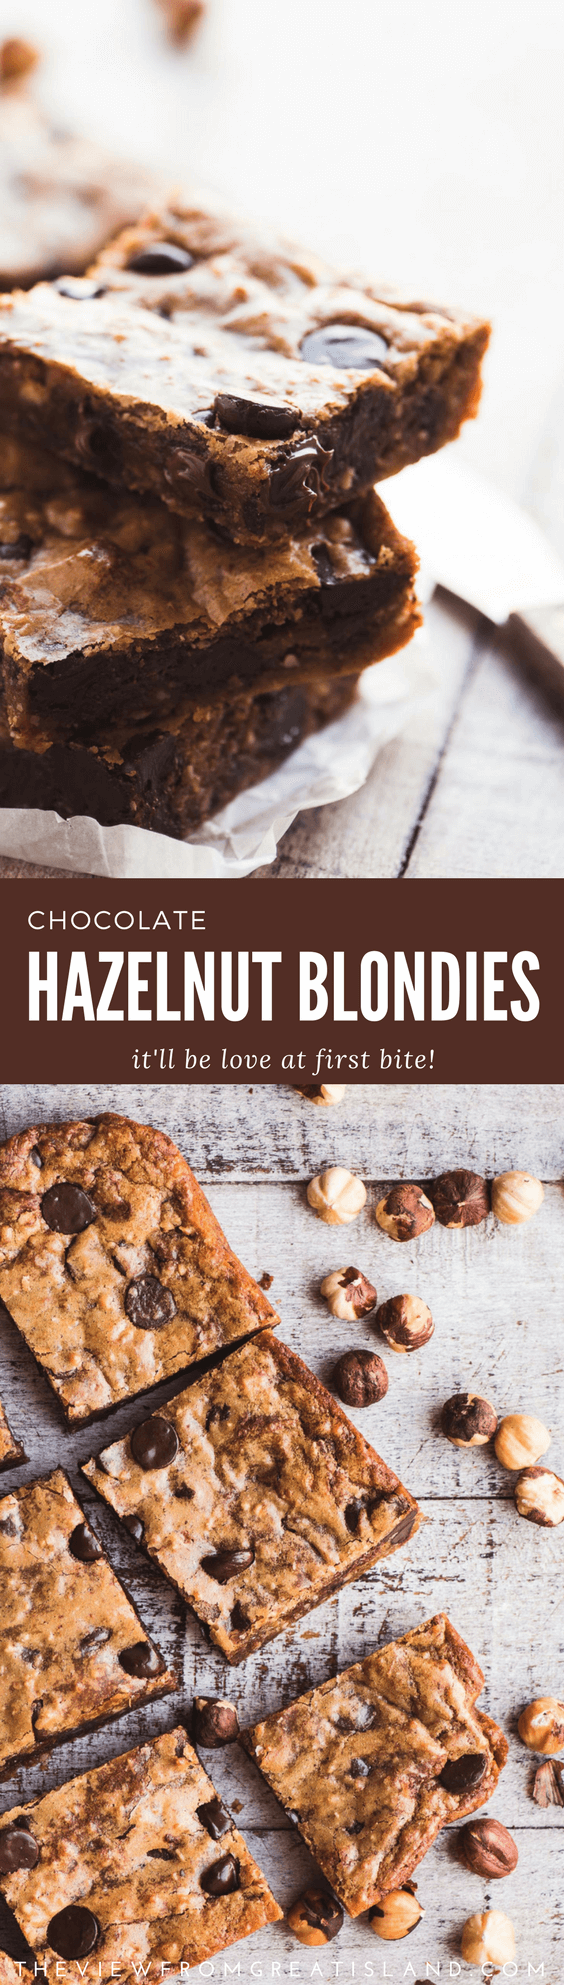 Outrageous Chocolate Hazelnut Blondies ~ these blondies are made with hazelnuts, Nutella, and dark chocolate chips for a truly unique flavor. #brownies #chocolate #hazelnut #nutella #blondies #bars #dessert #chocolatechips